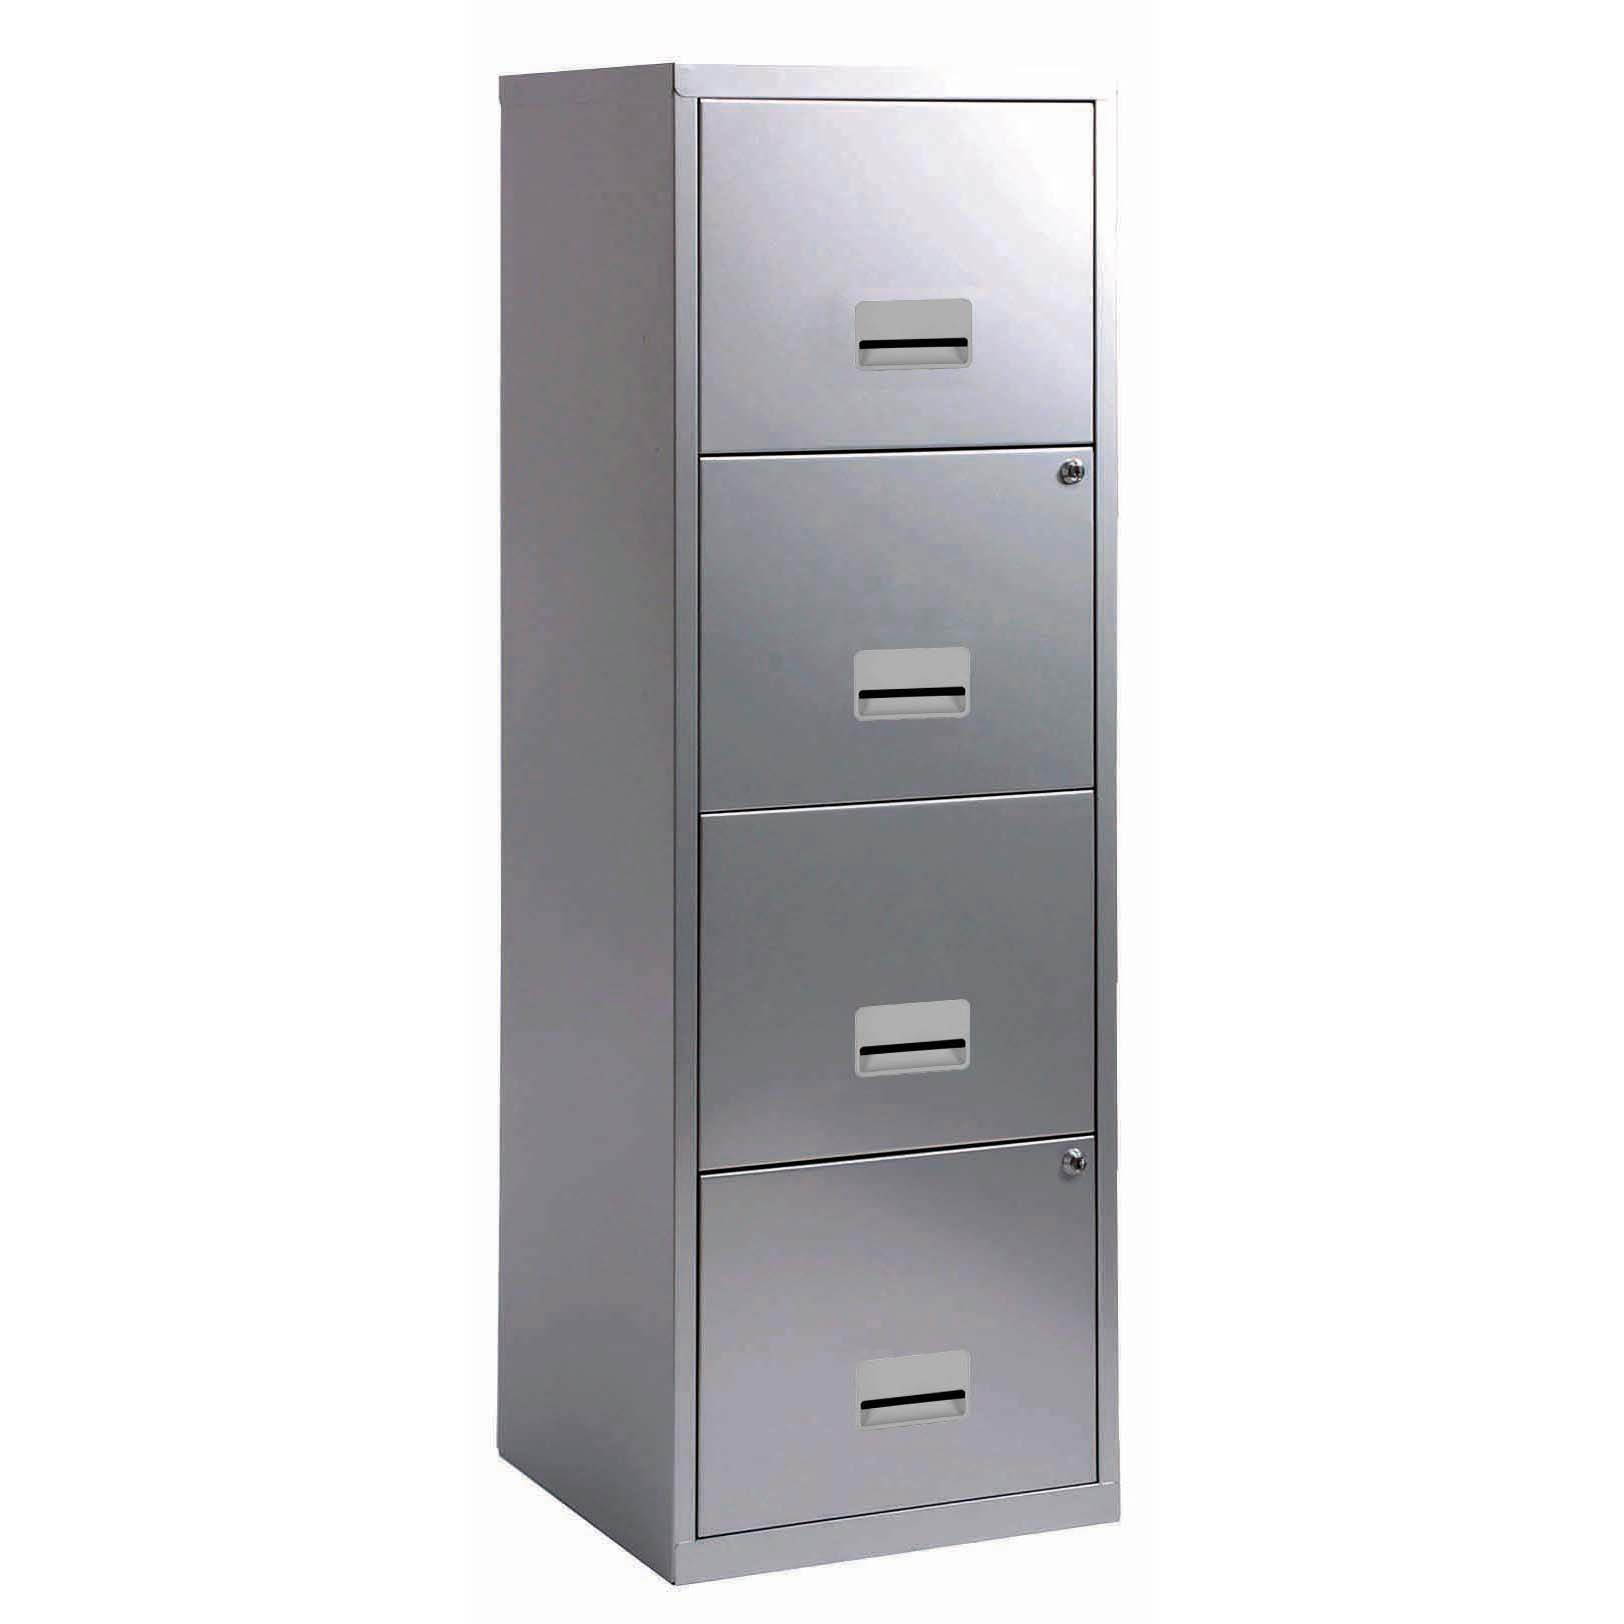 Filing cabinets or accesories Pierre Henry Filing Cabinet Steel 4 Drawer A4 400x400x1250mm Silver Ref 595044